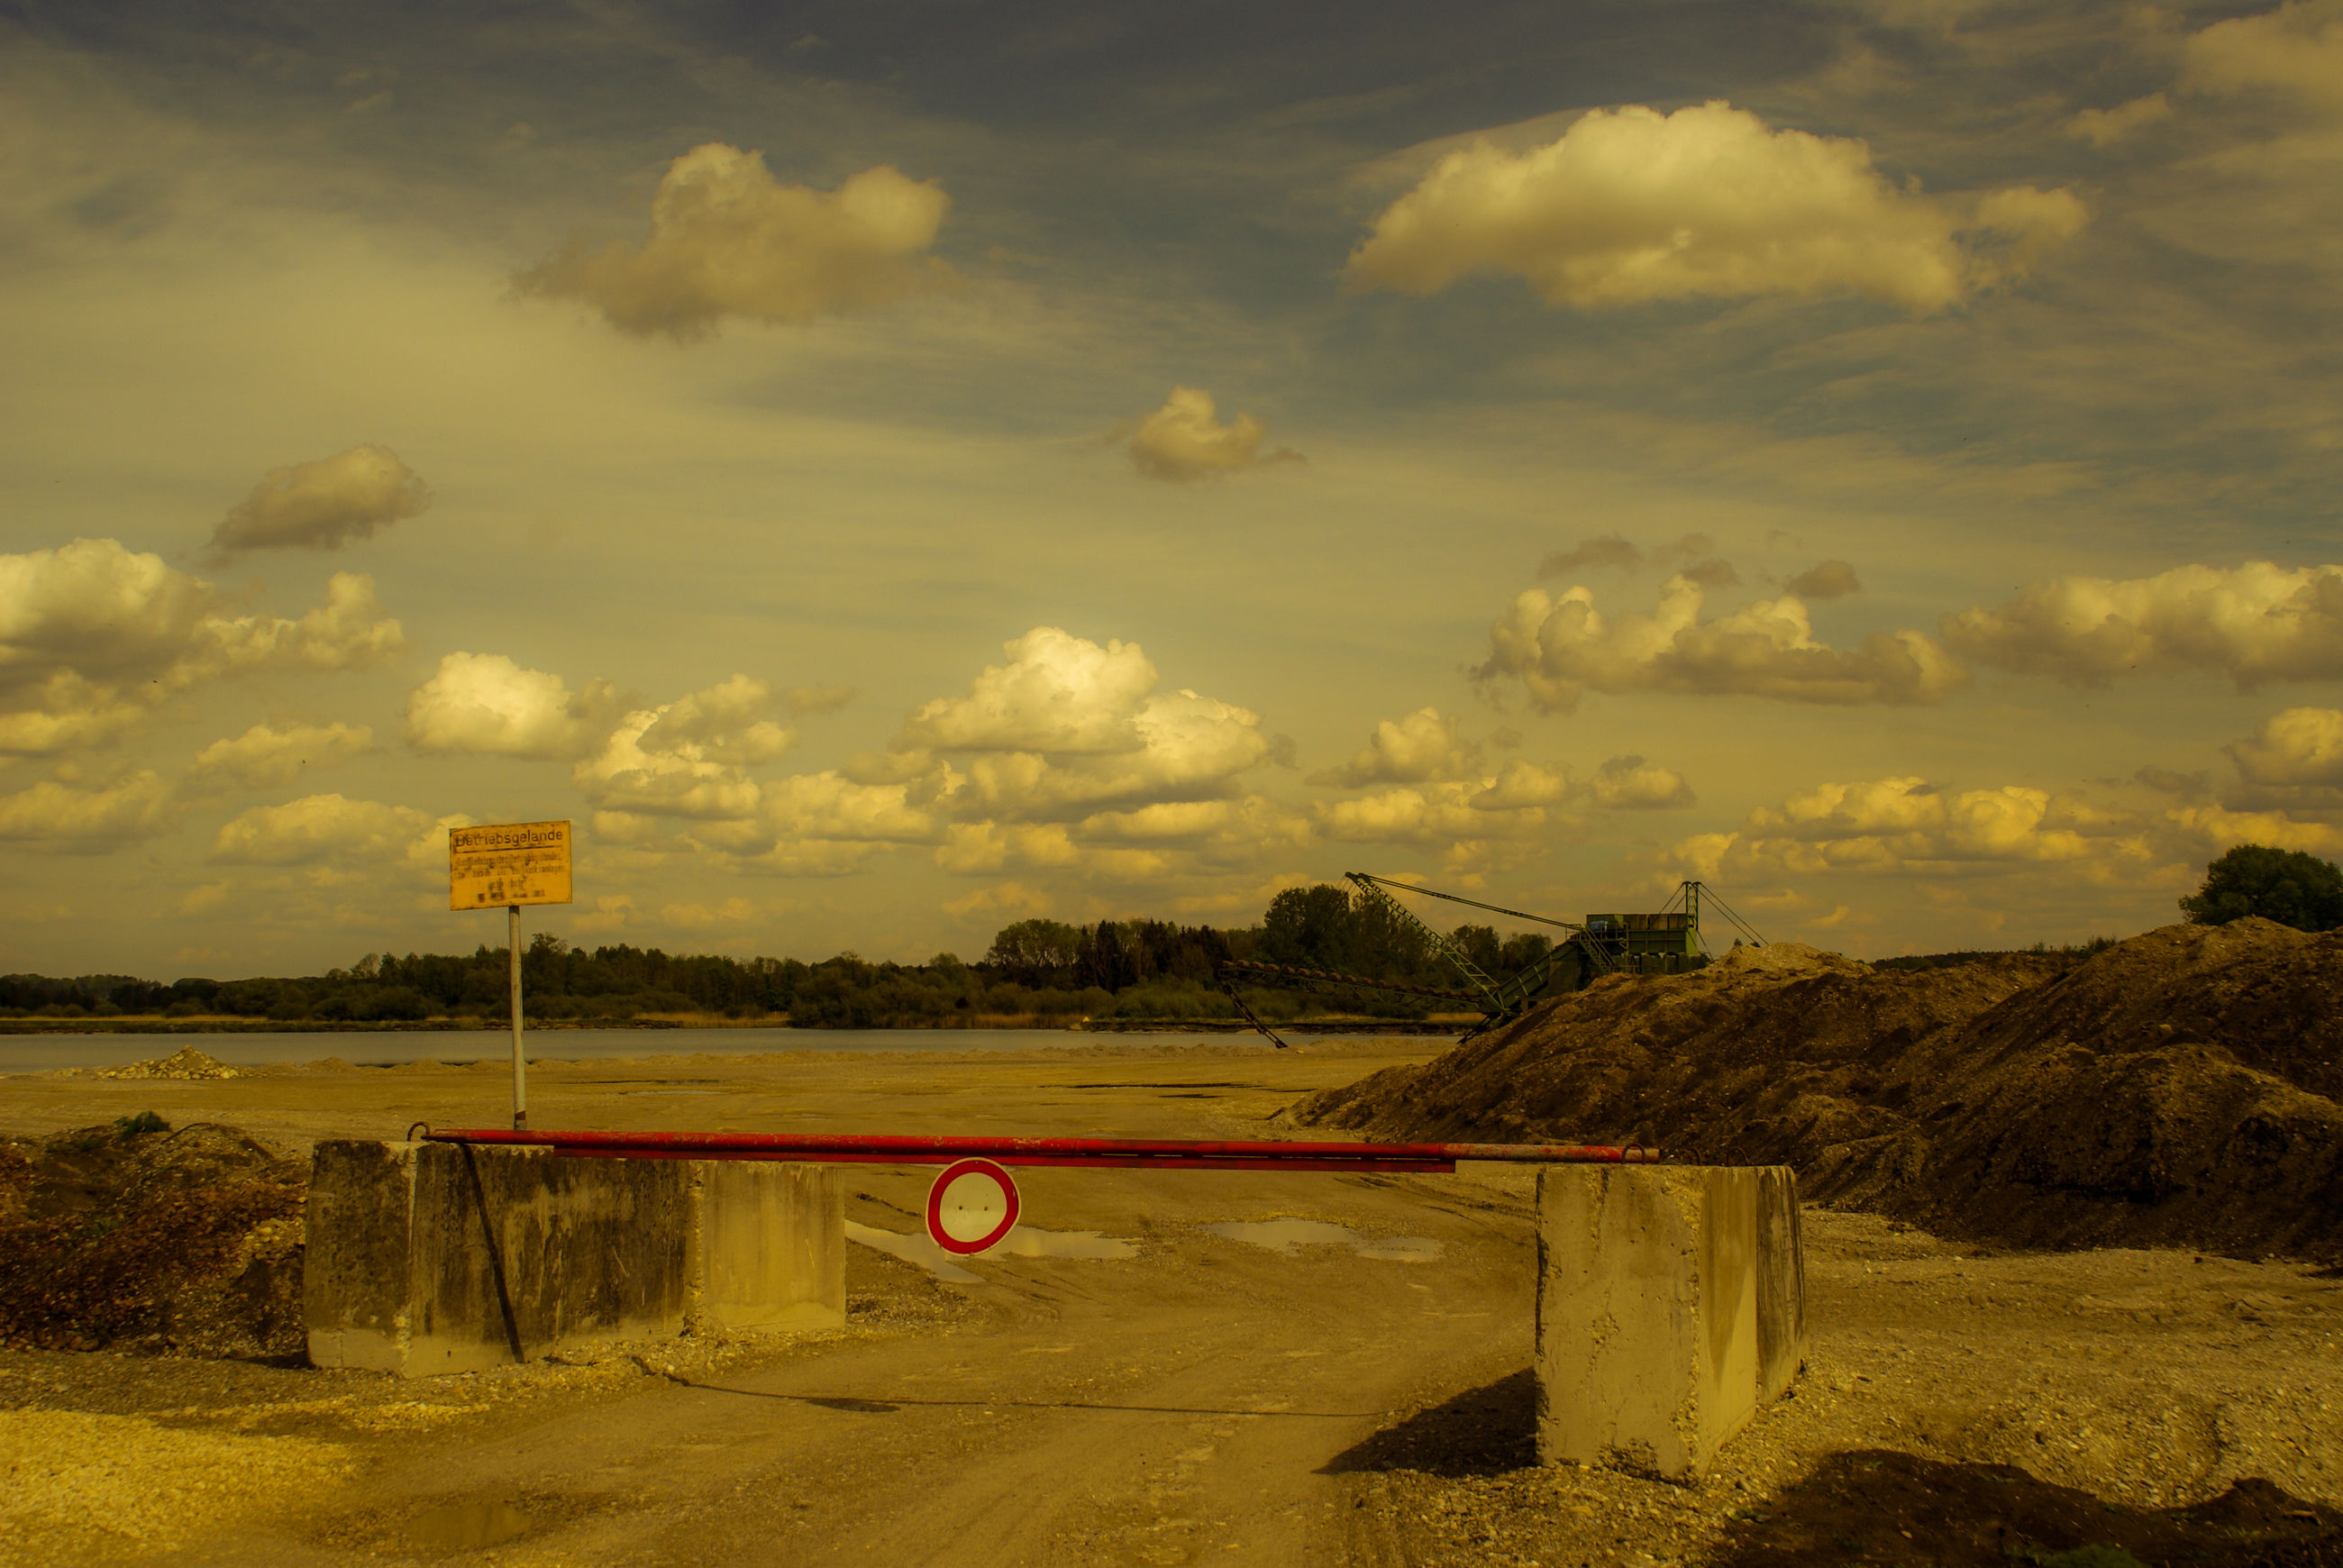 cloud - sky, sky, nature, no people, transportation, road, road sign, sign, architecture, land, built structure, scenics - nature, outdoors, beauty in nature, communication, day, environment, landscape, connection, field